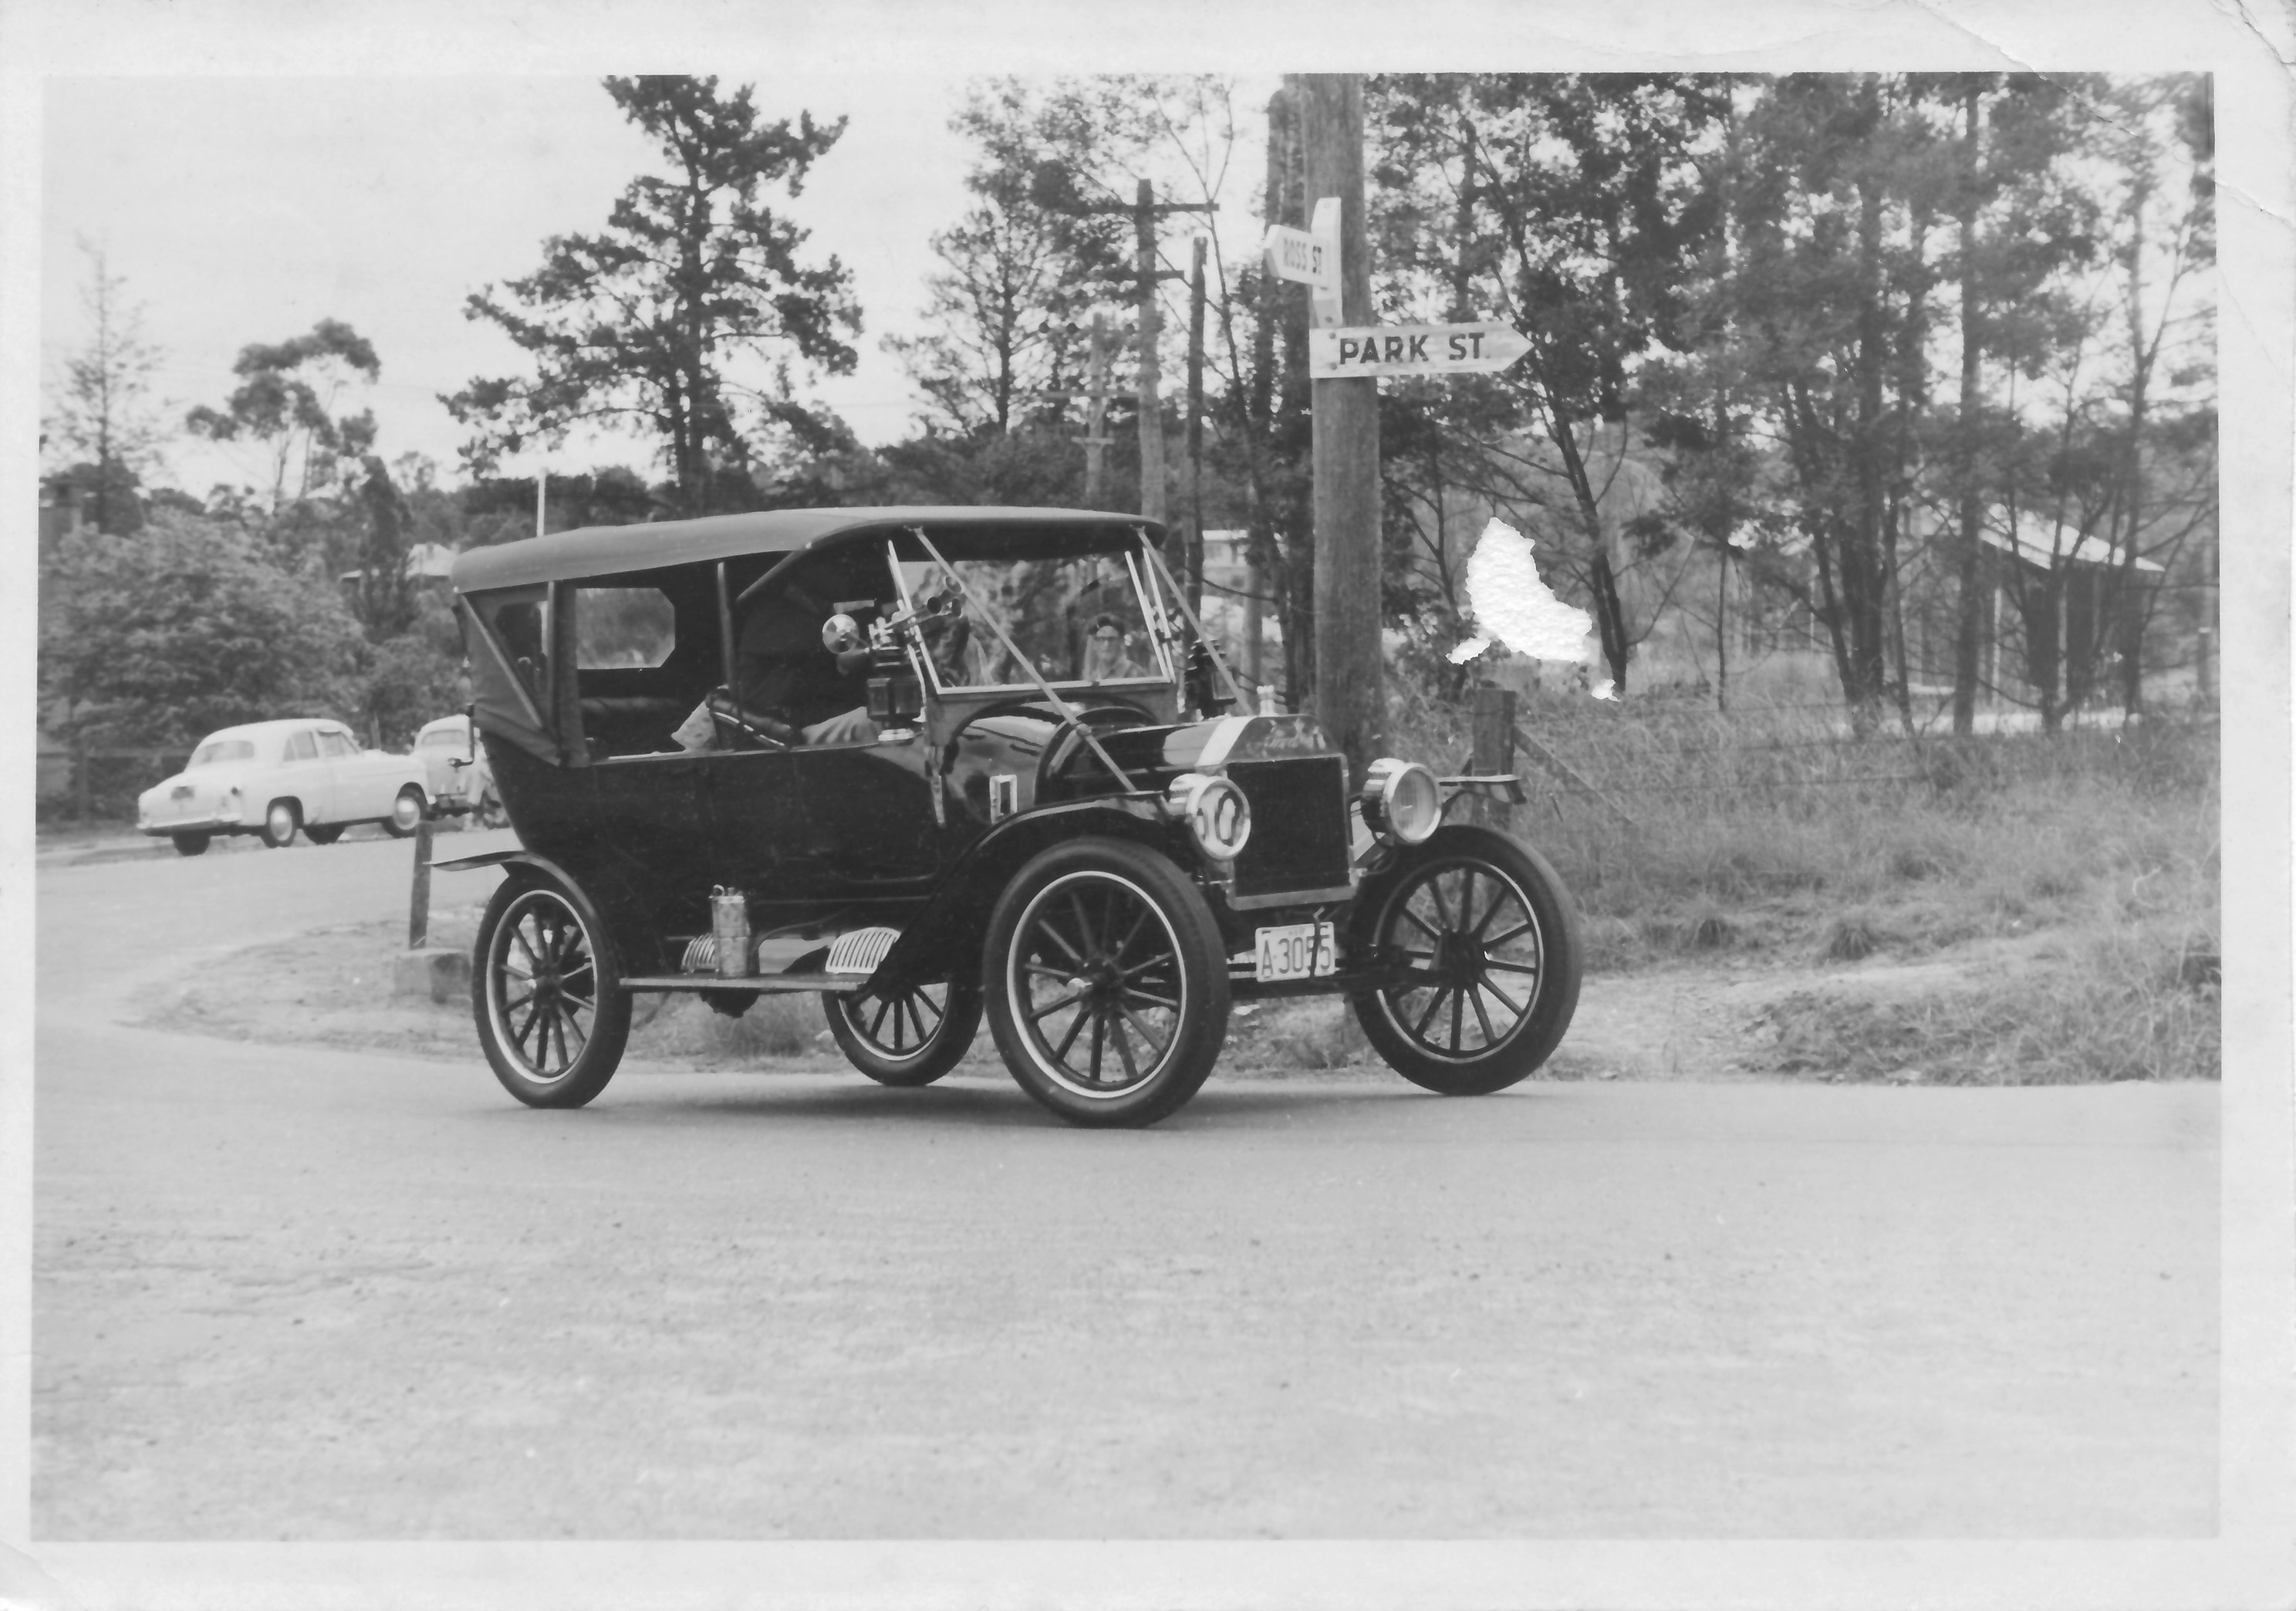 #60 1912 Model T Ford